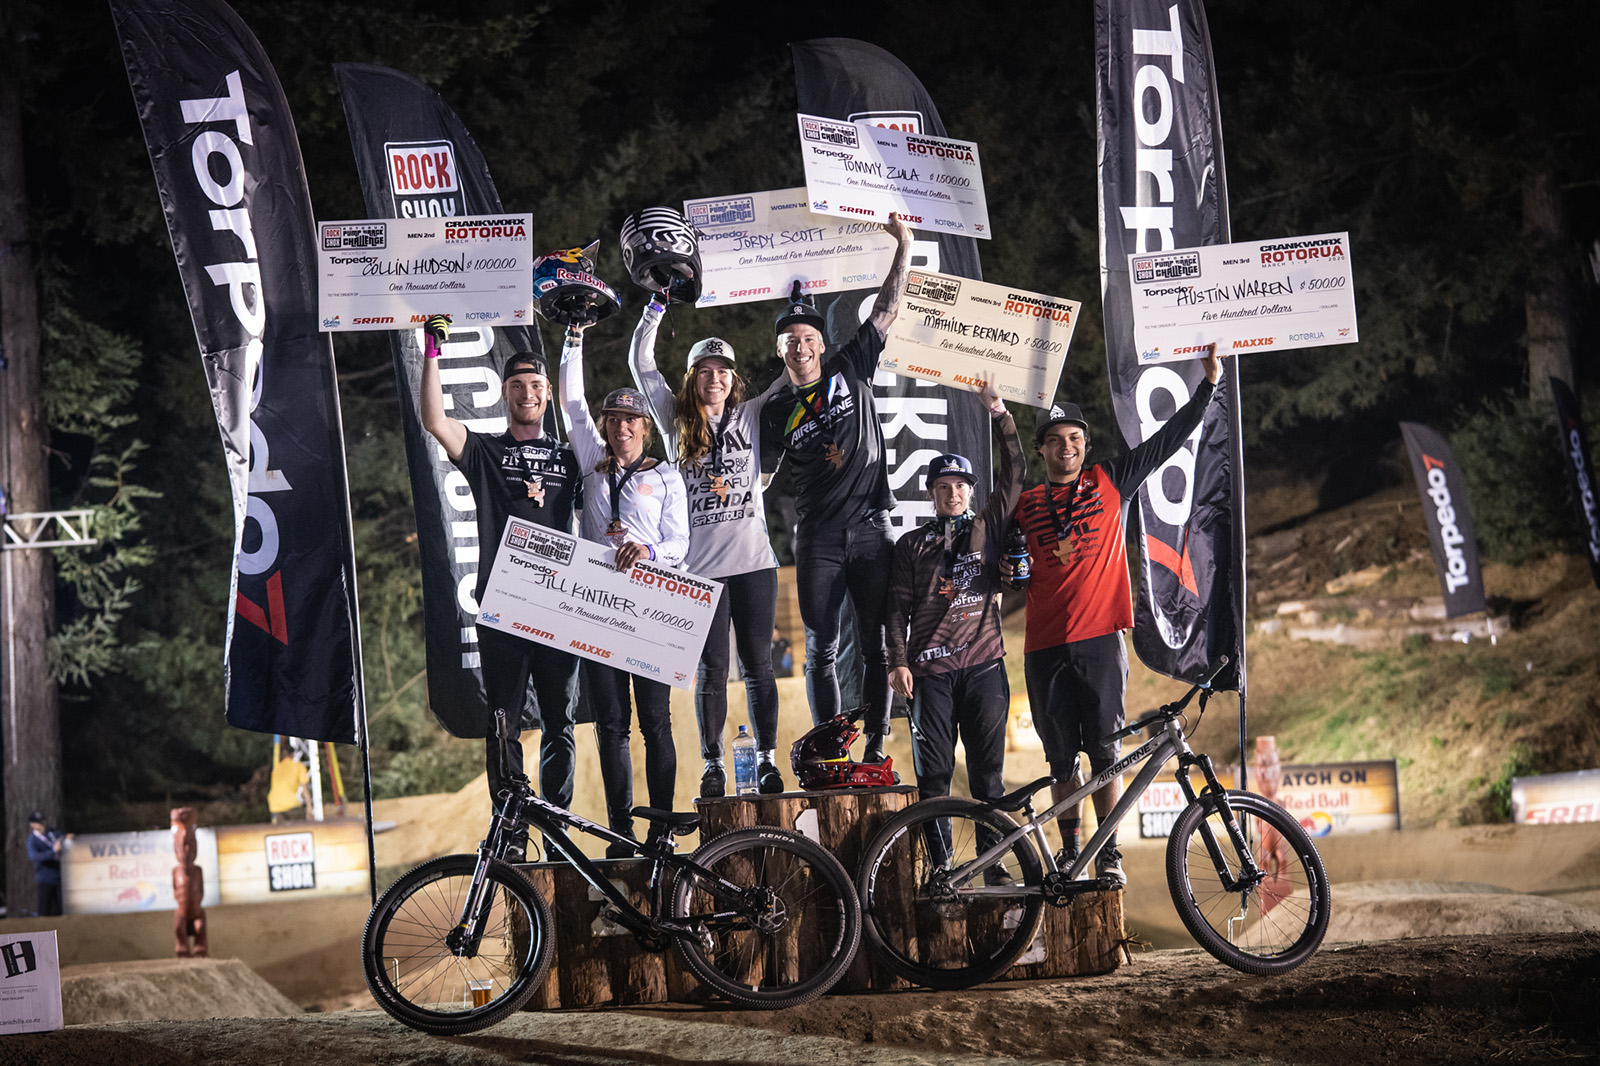 Crankworx Rotorua Downhill presented by Gull